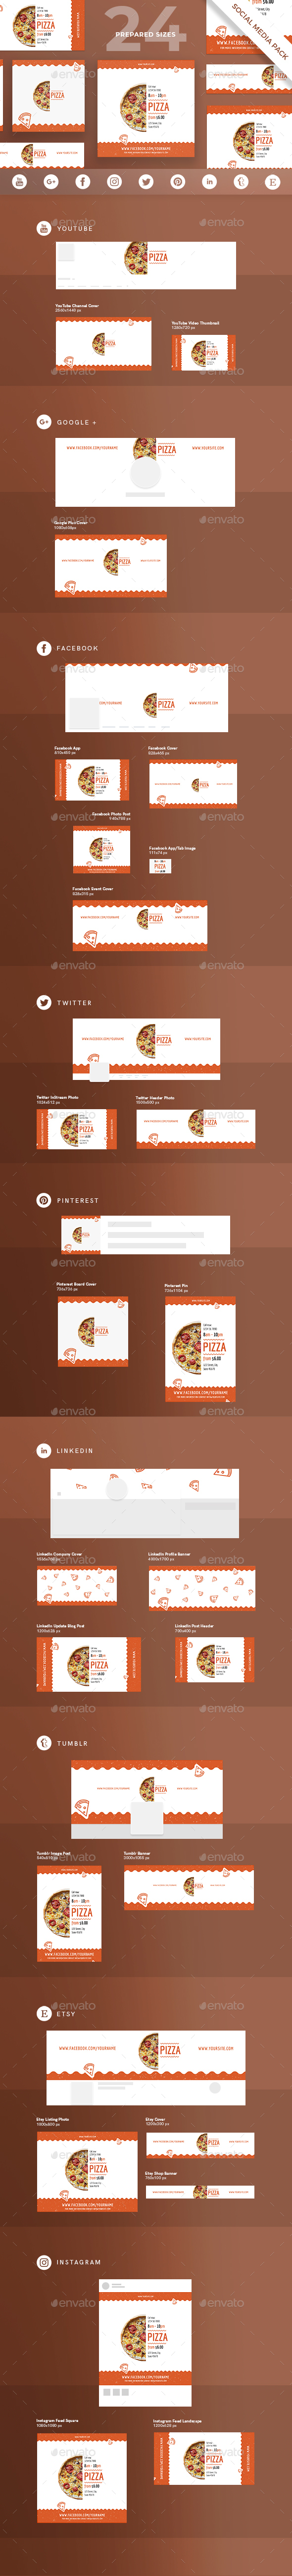 Tasty Pizza Social Media Pack - Miscellaneous Social Media